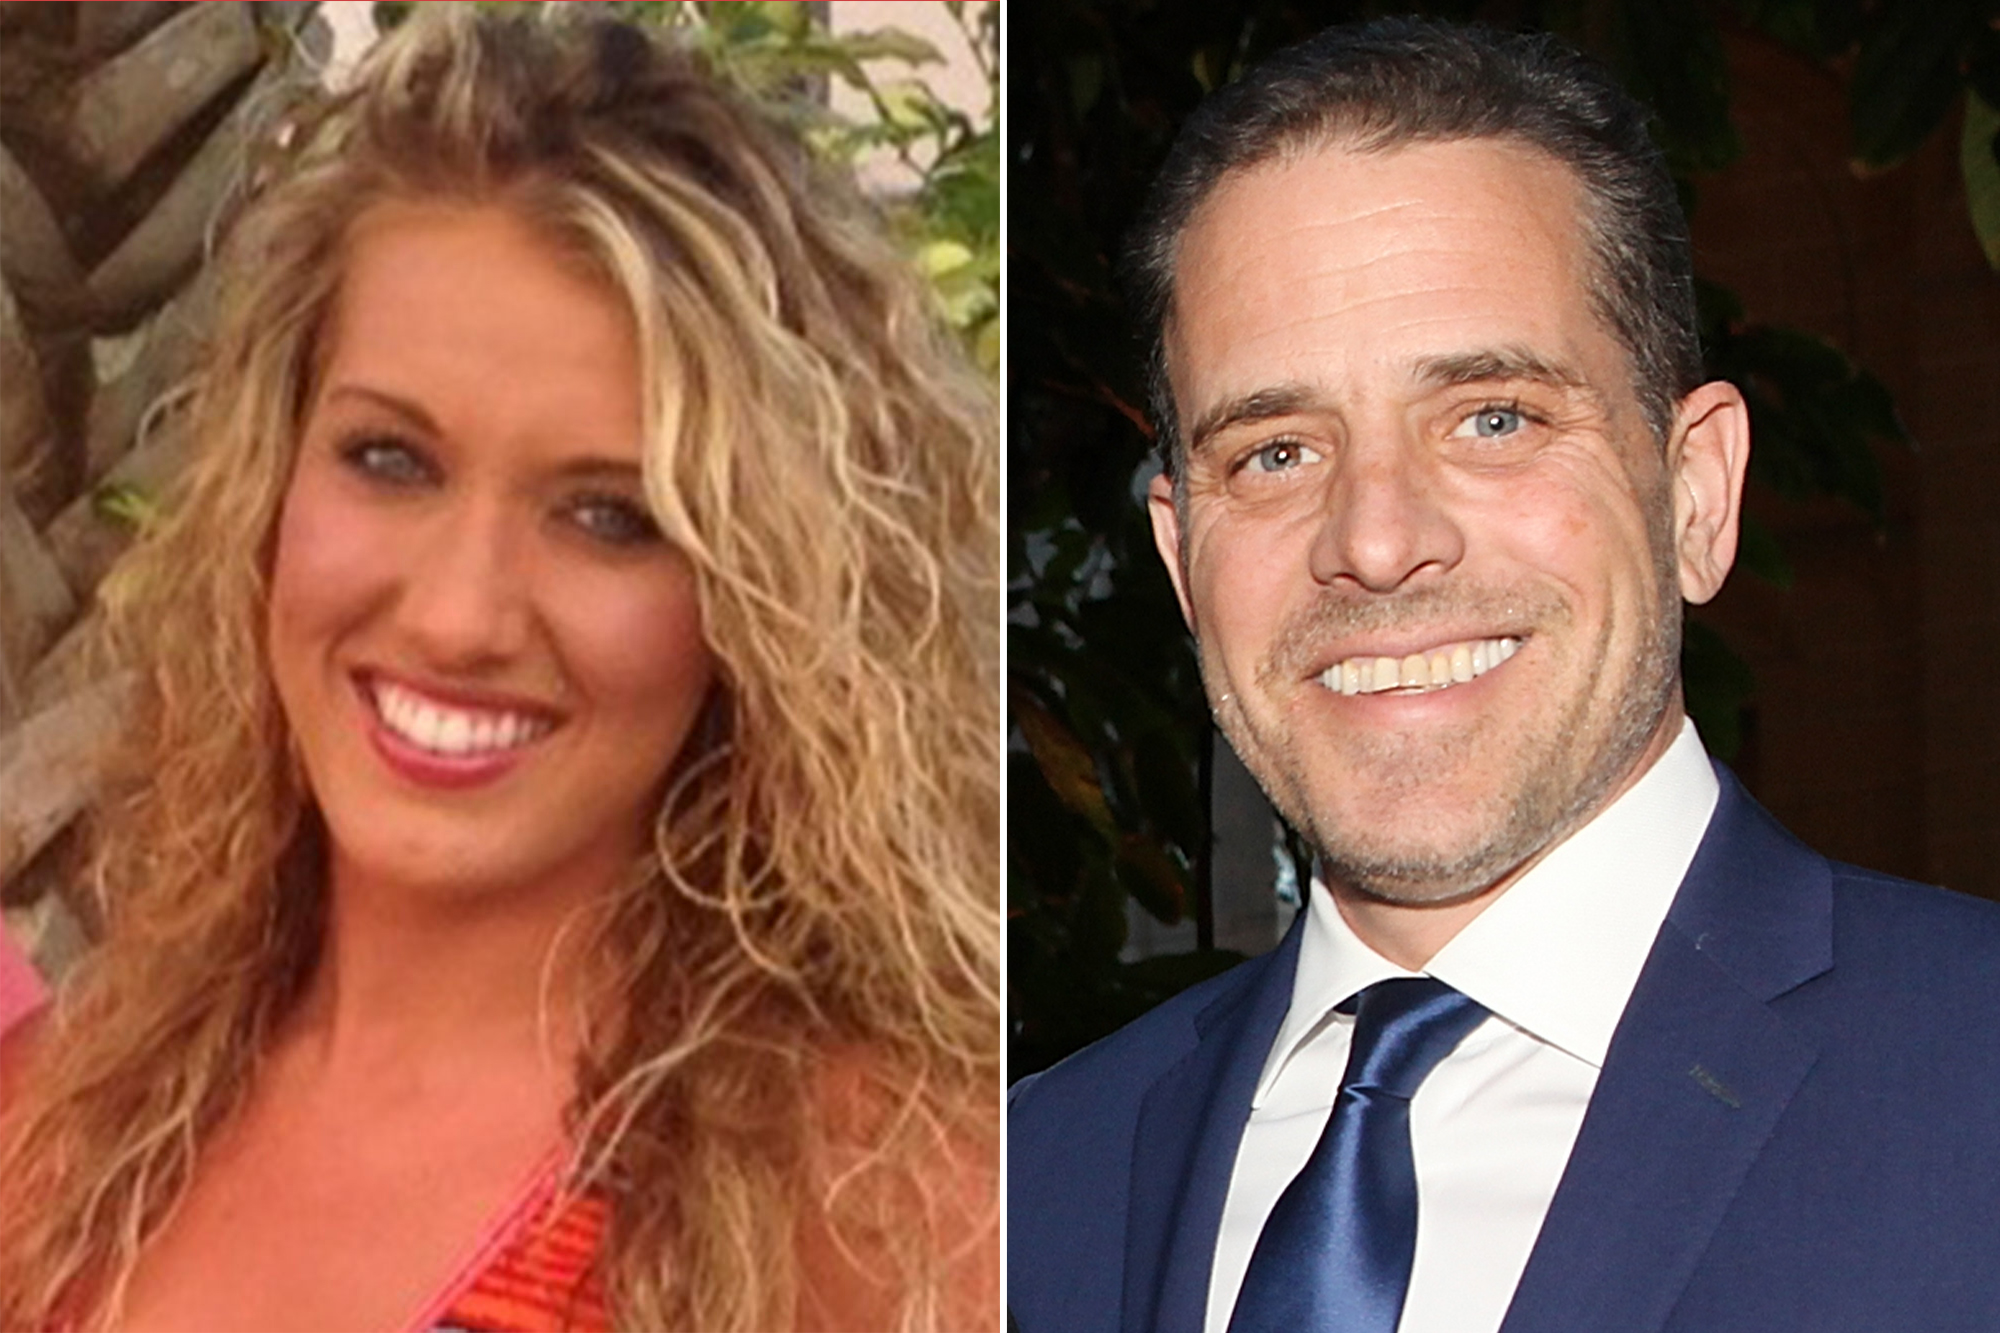 Hunter Biden S Baby Mama Was Stripper At Club He Frequented